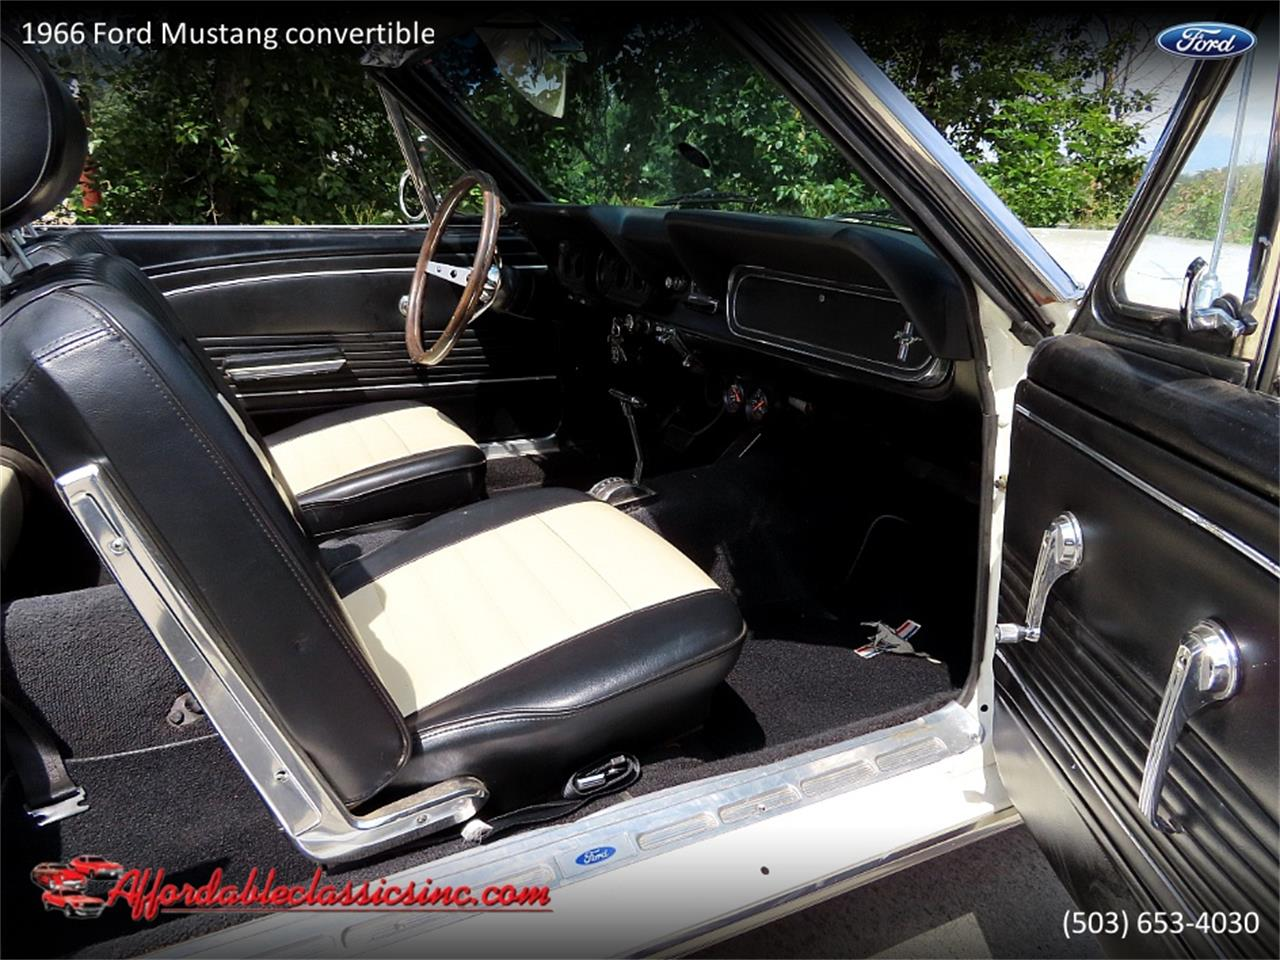 Ford Mustang Pony pack v8 289 1966 prix tout compris